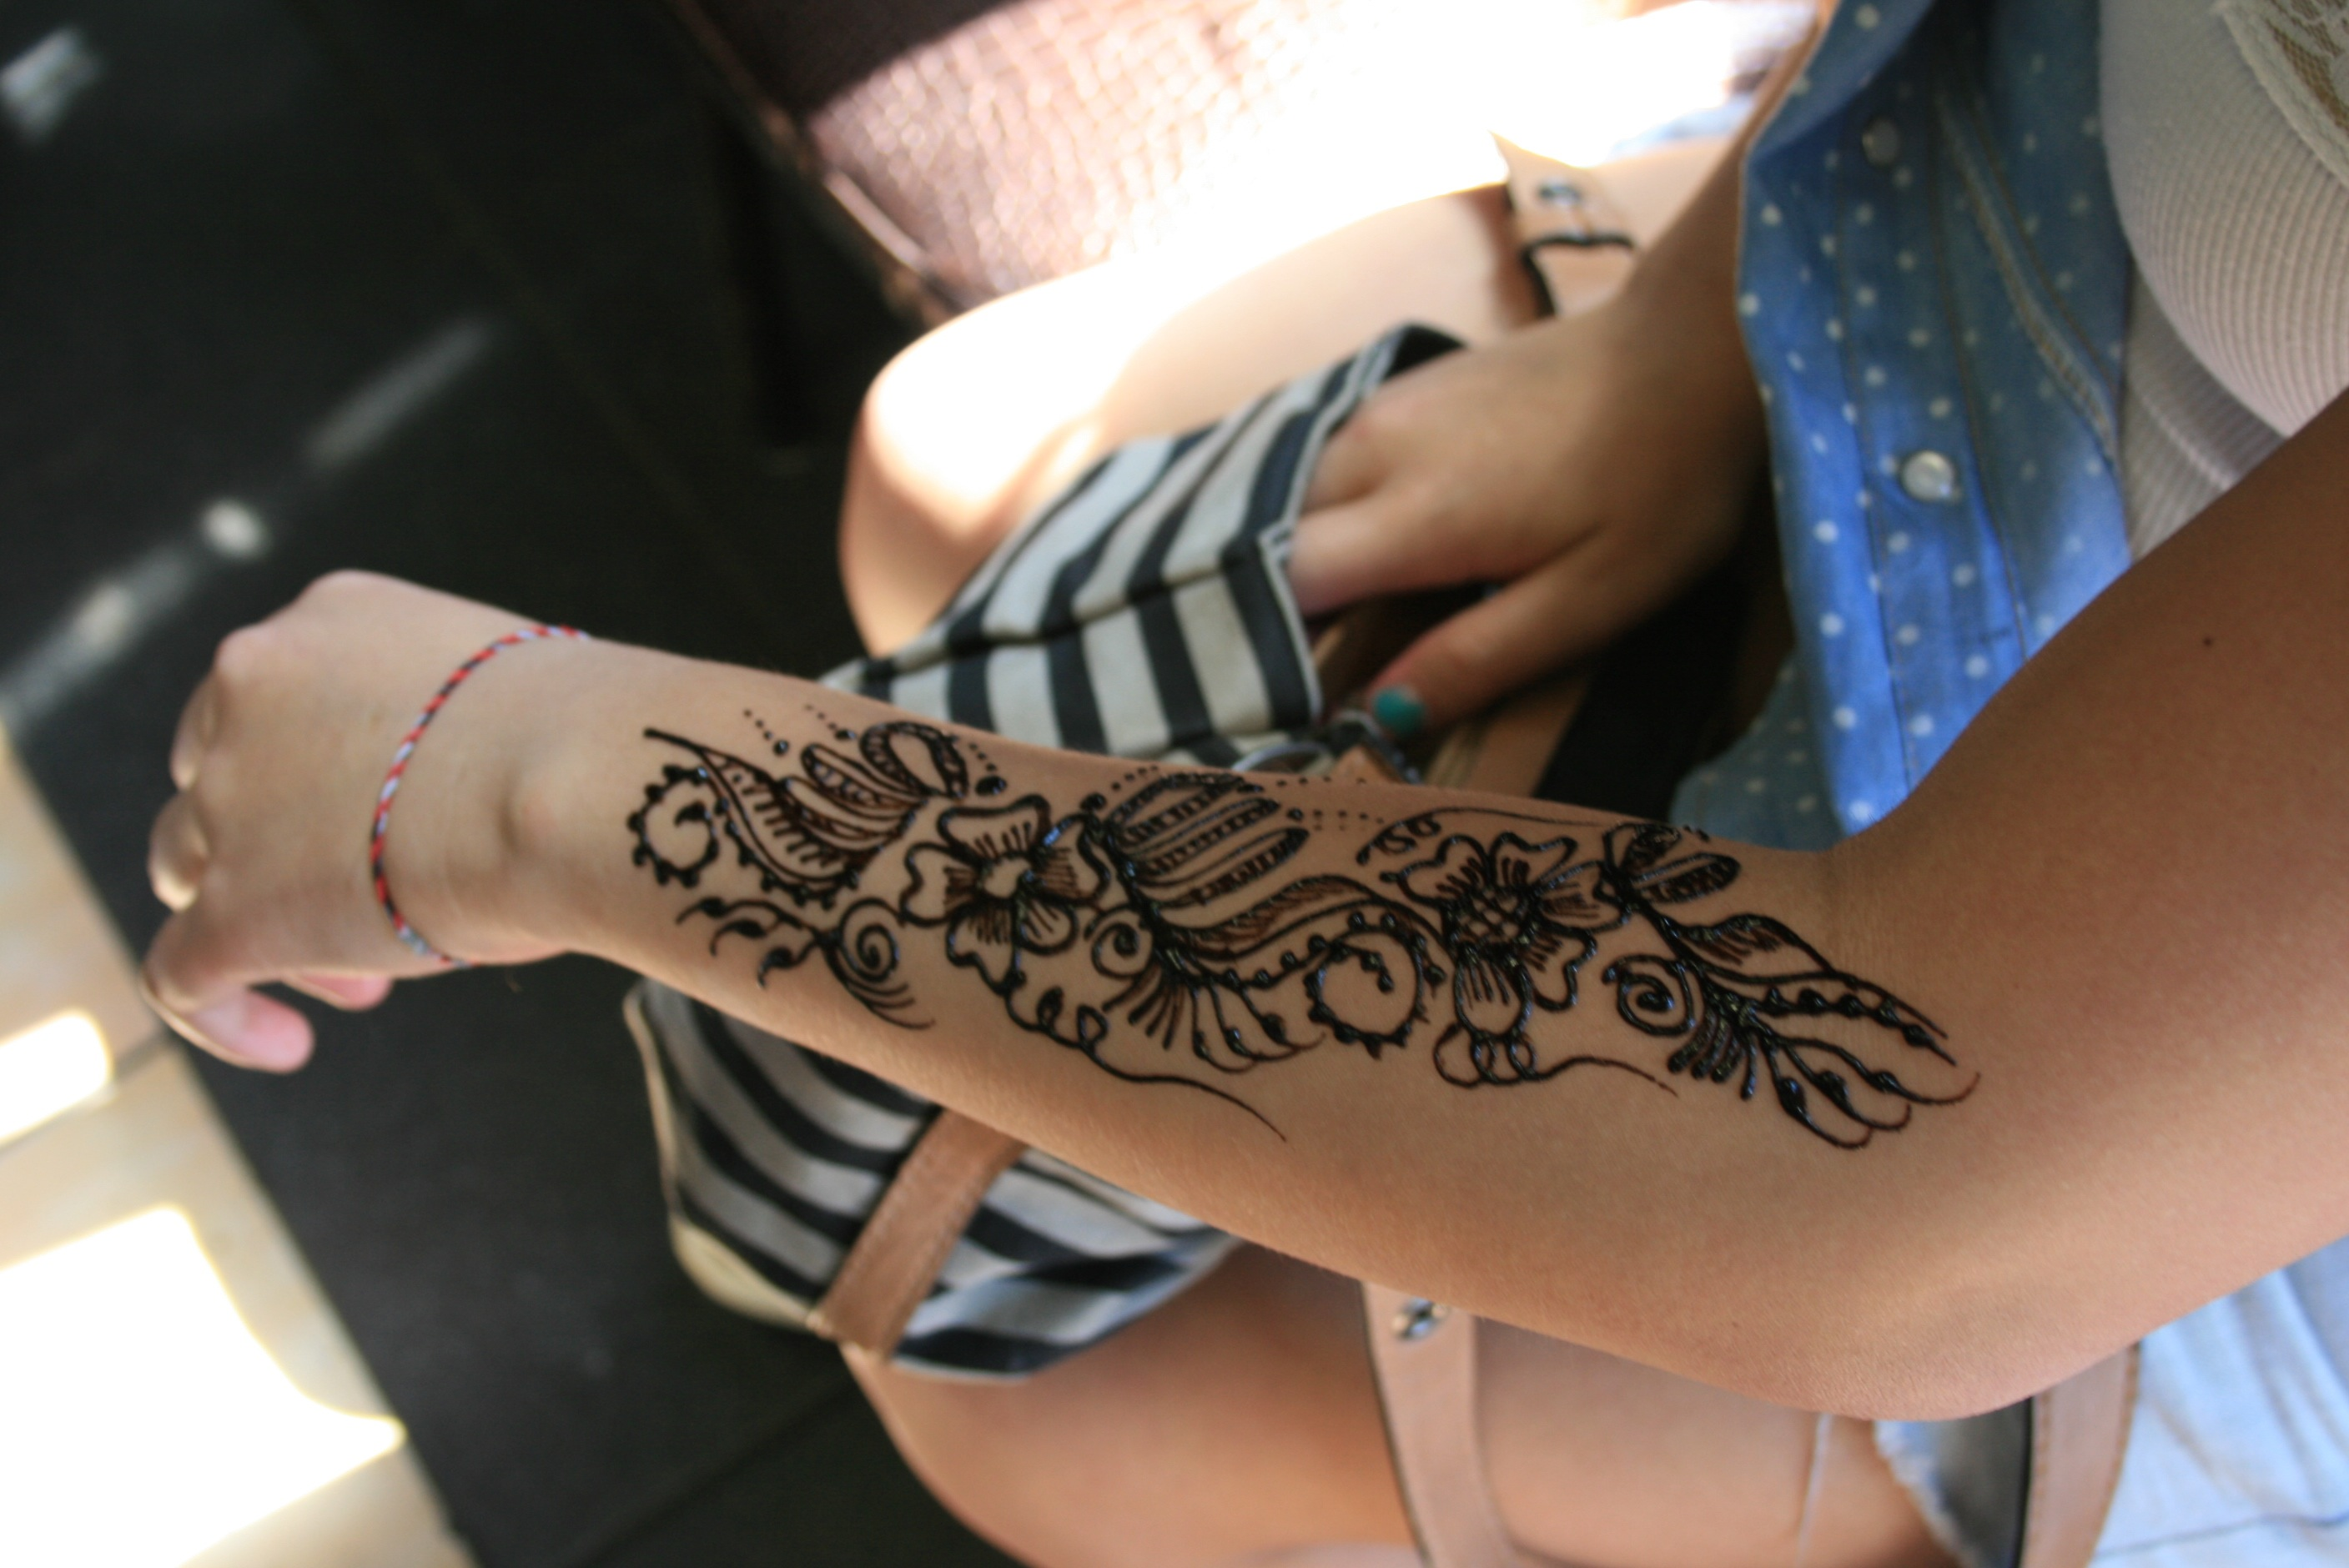 Awesome Henna Tattoo Design On Arm